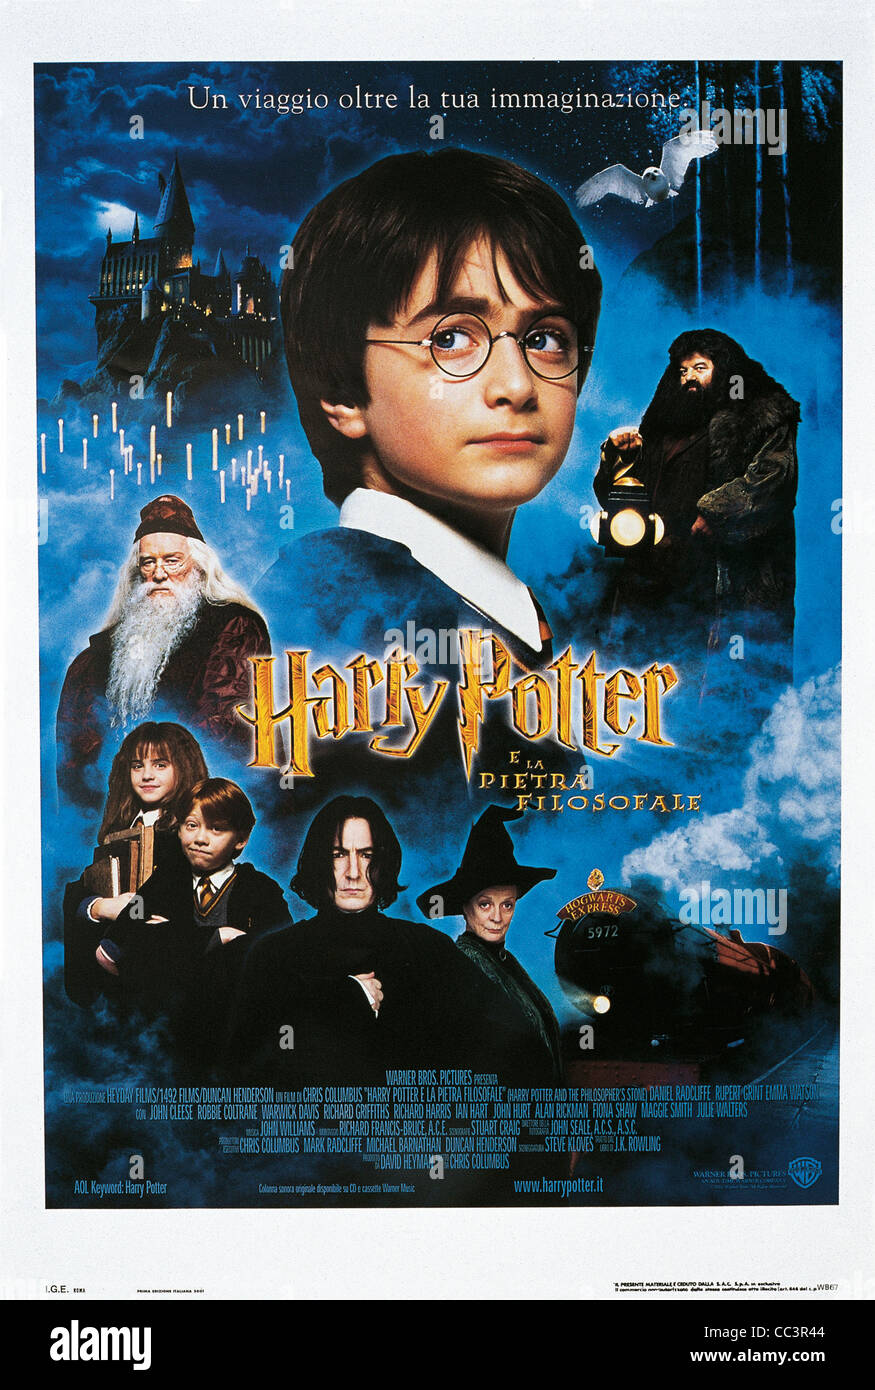 Roman Harry Potter and the Philosopher's Stone turned 20 years old 06/26/2017 21